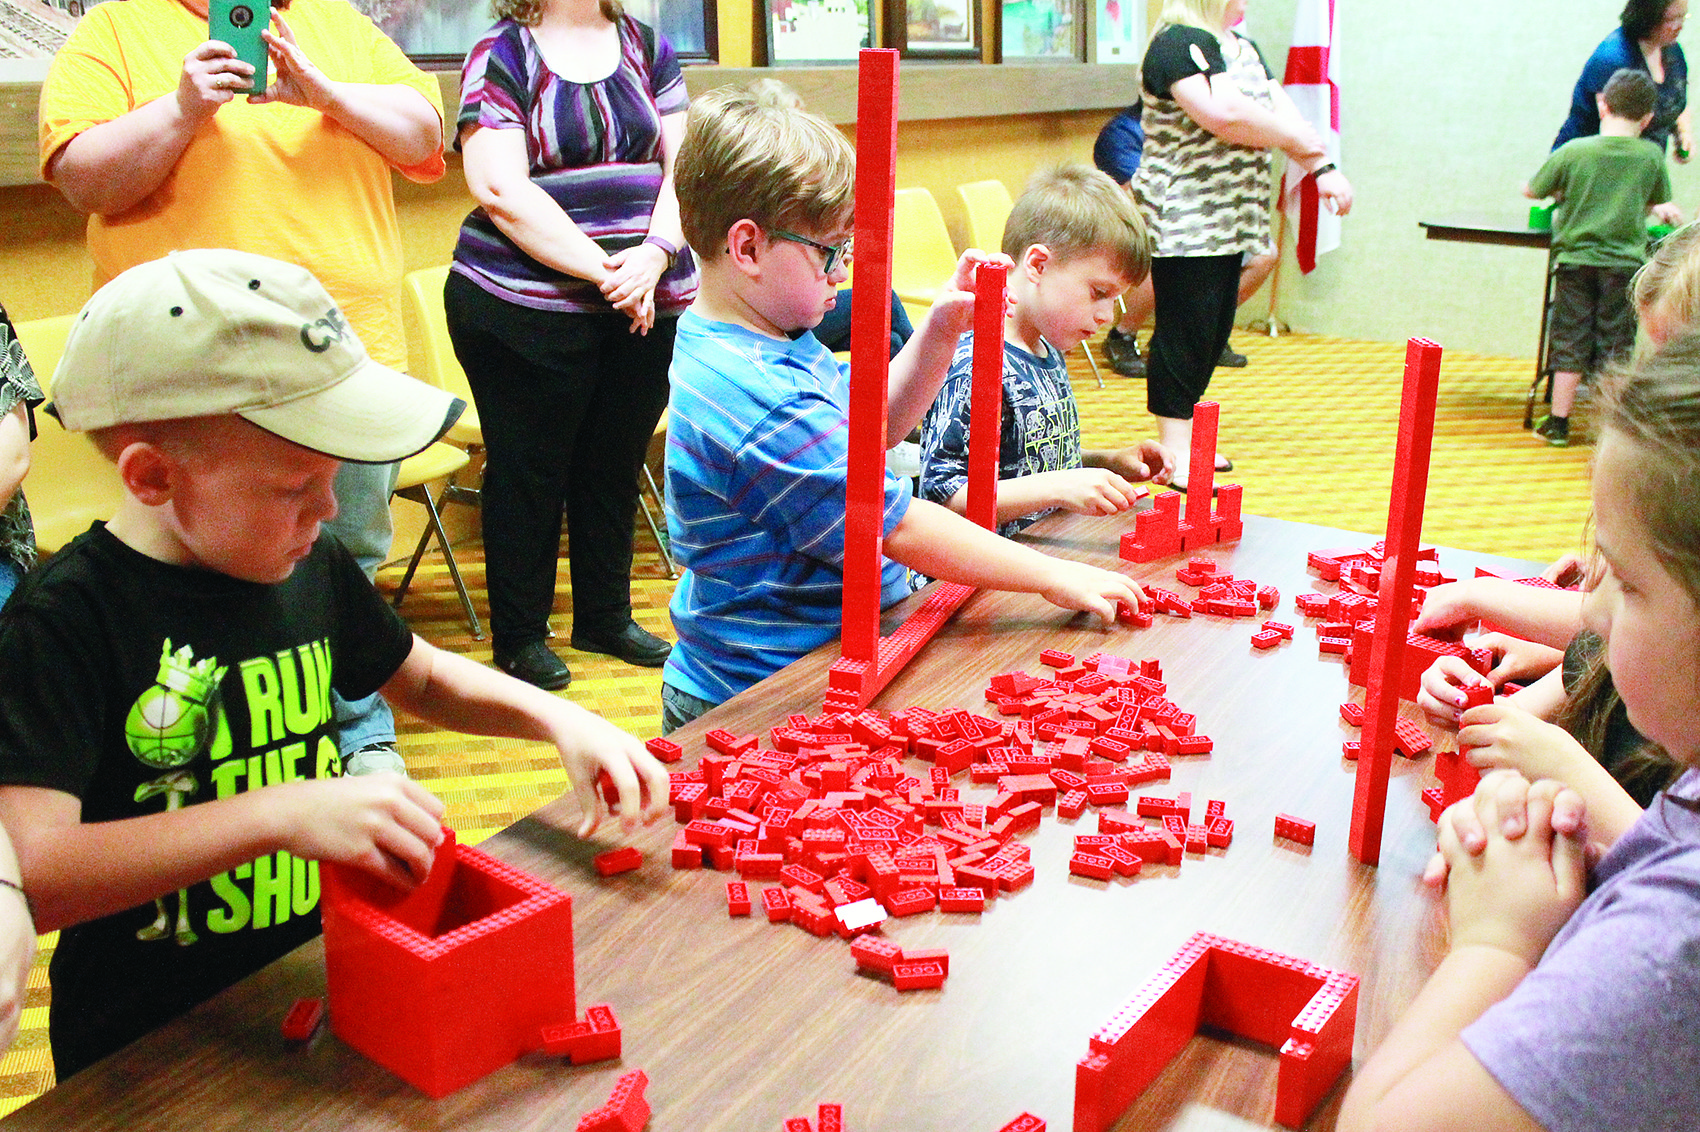 The Jasper Public Library hosted a LEGO building activity with Peter Bradberry of Magic City LEGO Users Group on Thursday afternoon. Participants used LEGOs to build bridges and tall buildings. The event was part of National Library Week.